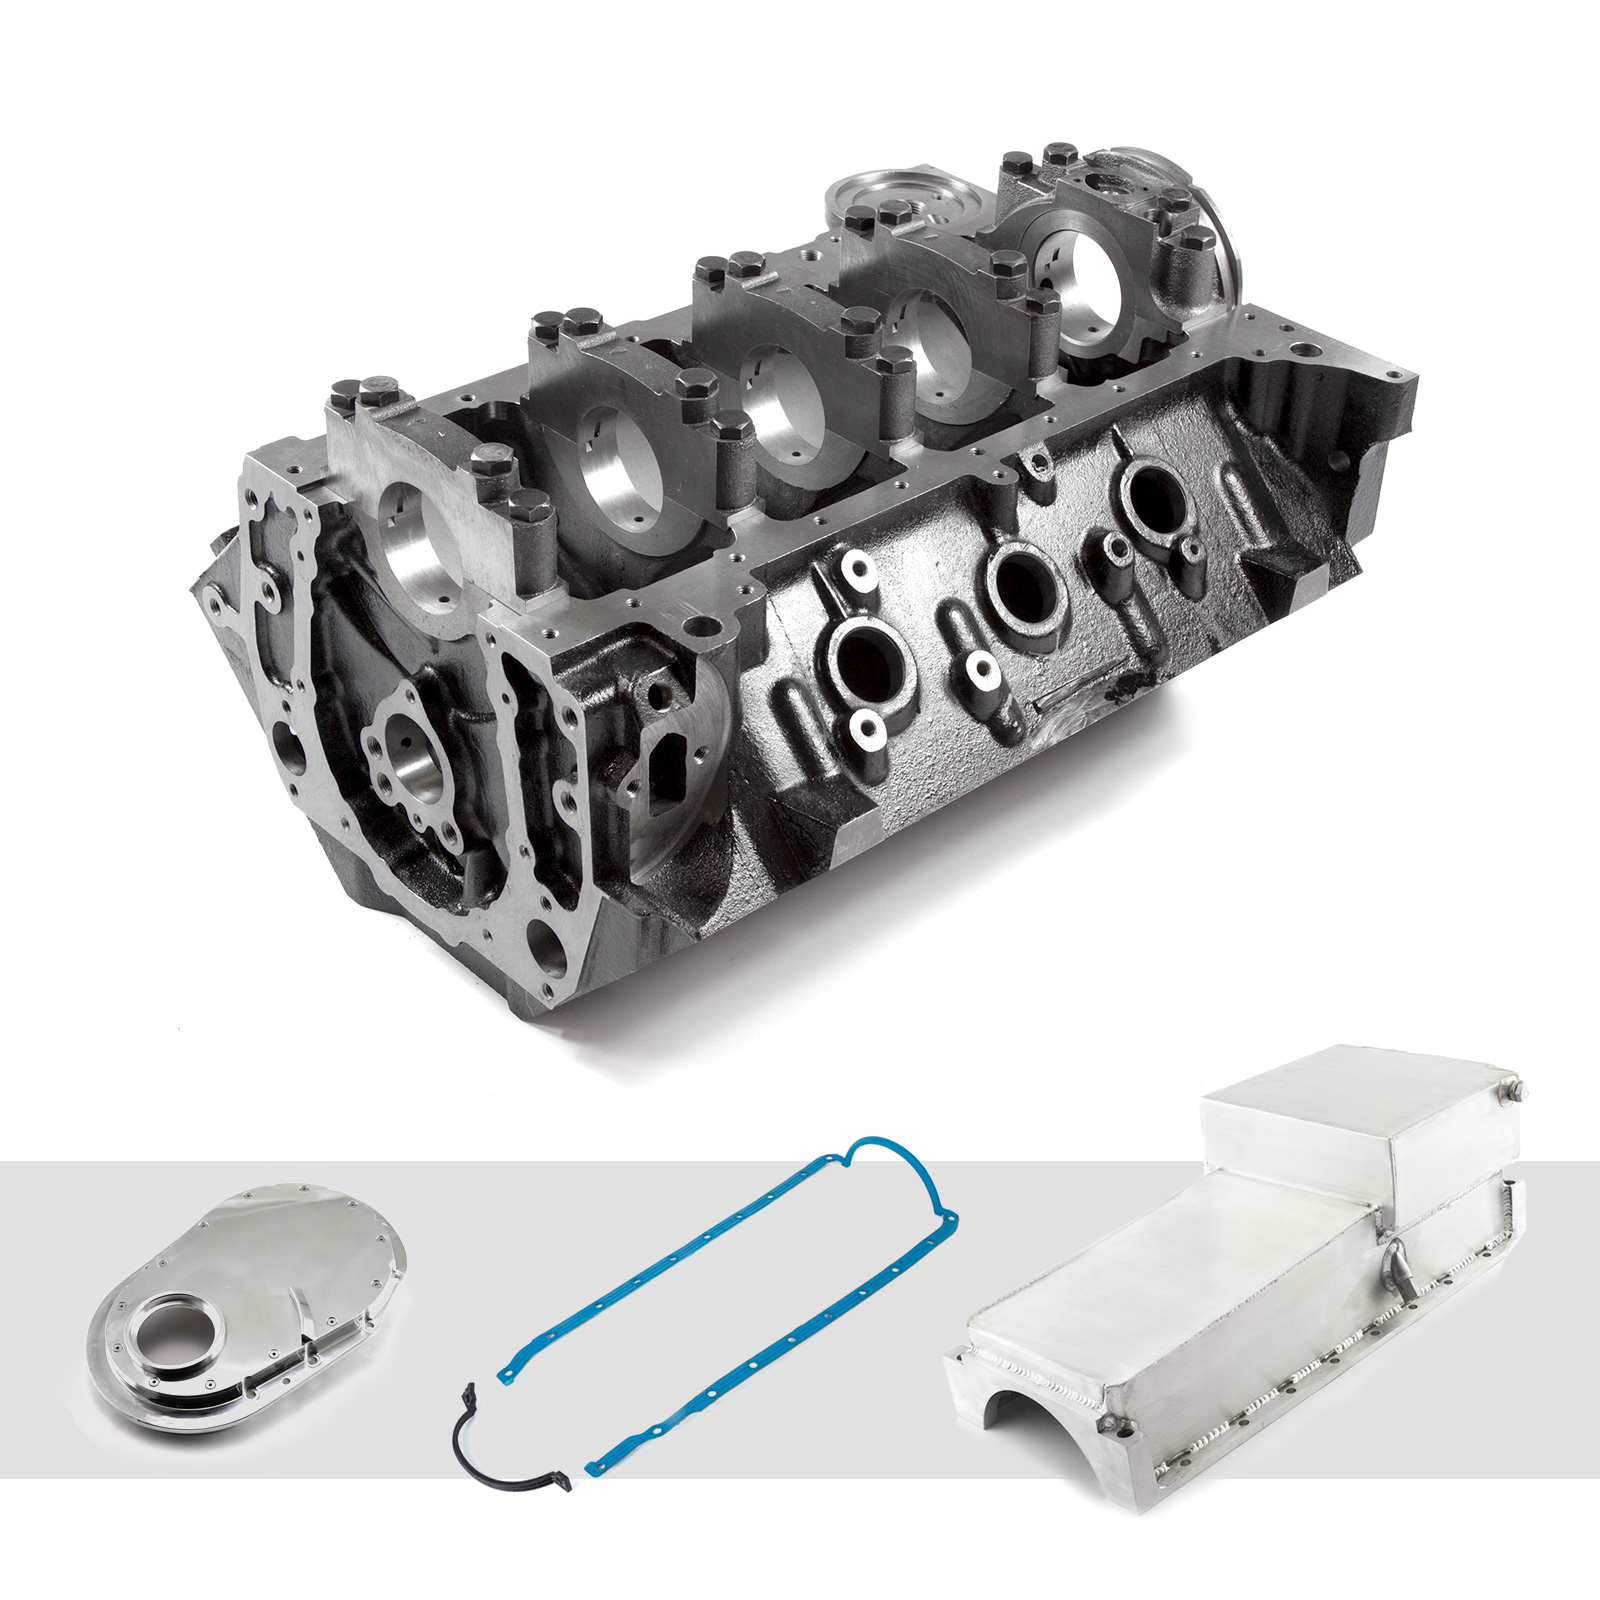 Chevy BBC 454 4-Bolt Billet Main Iron Engine Block Oil Pan & Timing Cover Kit